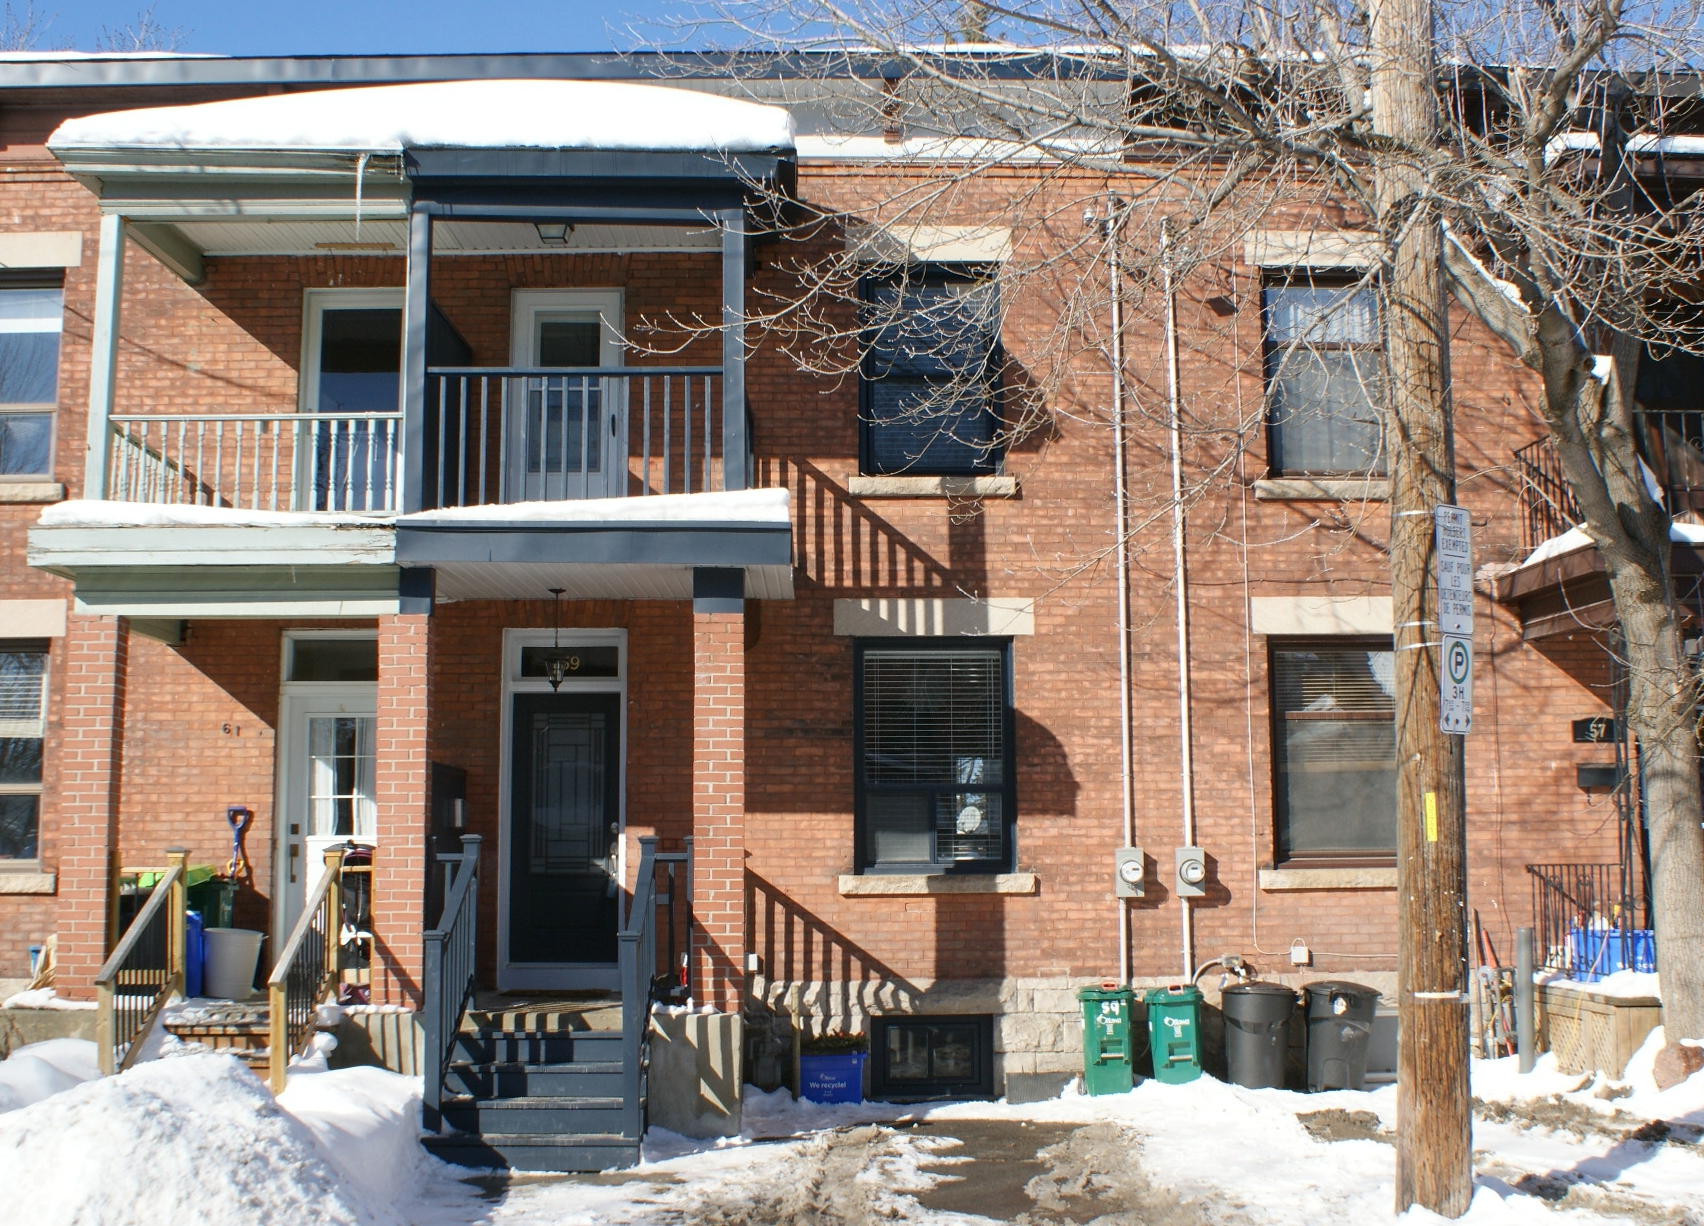 59 Elm St – Sold March 2015